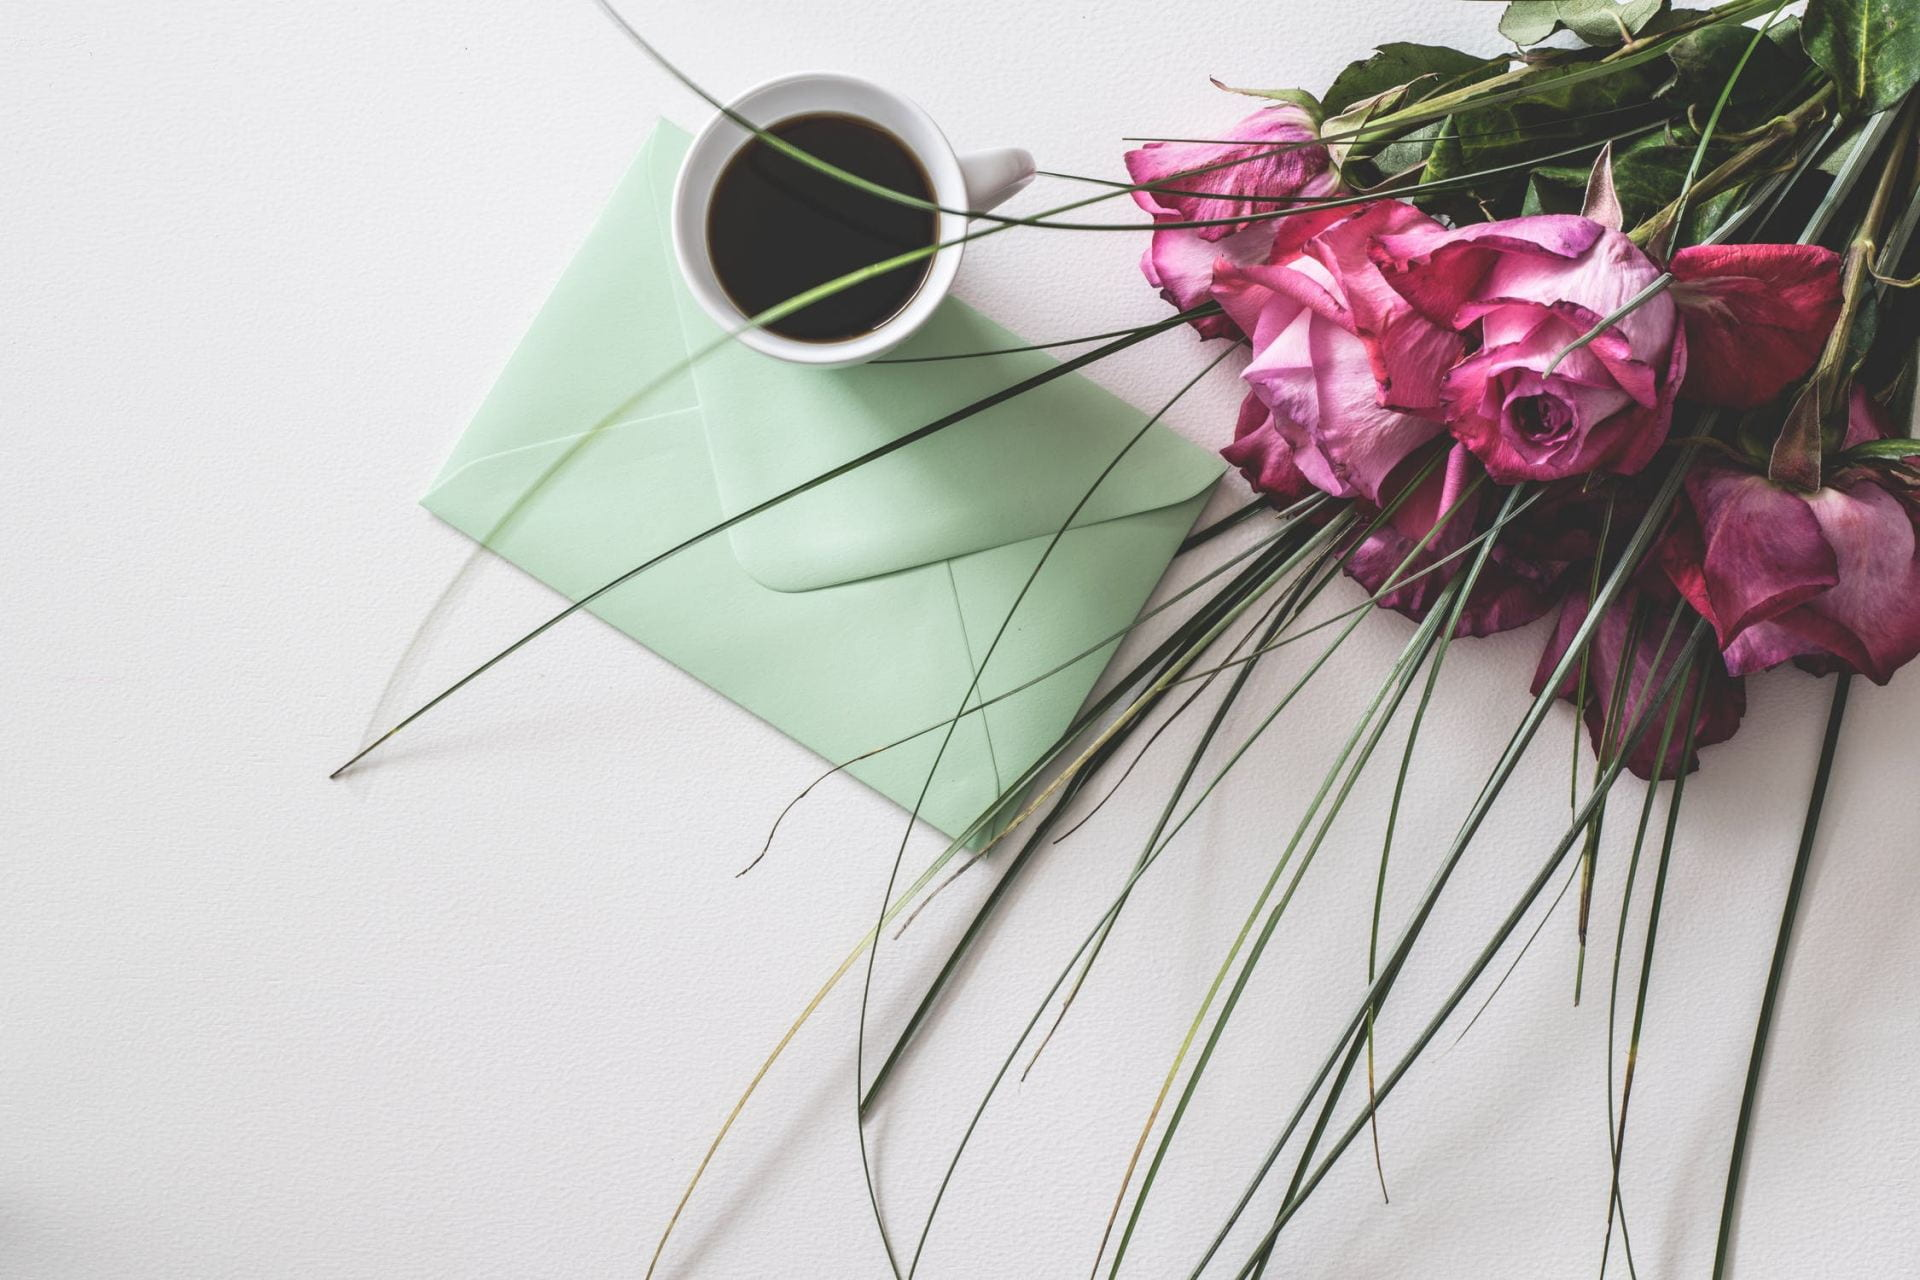 A green letter, a mug of coffee and a bouquet of pink roses on a white surface.